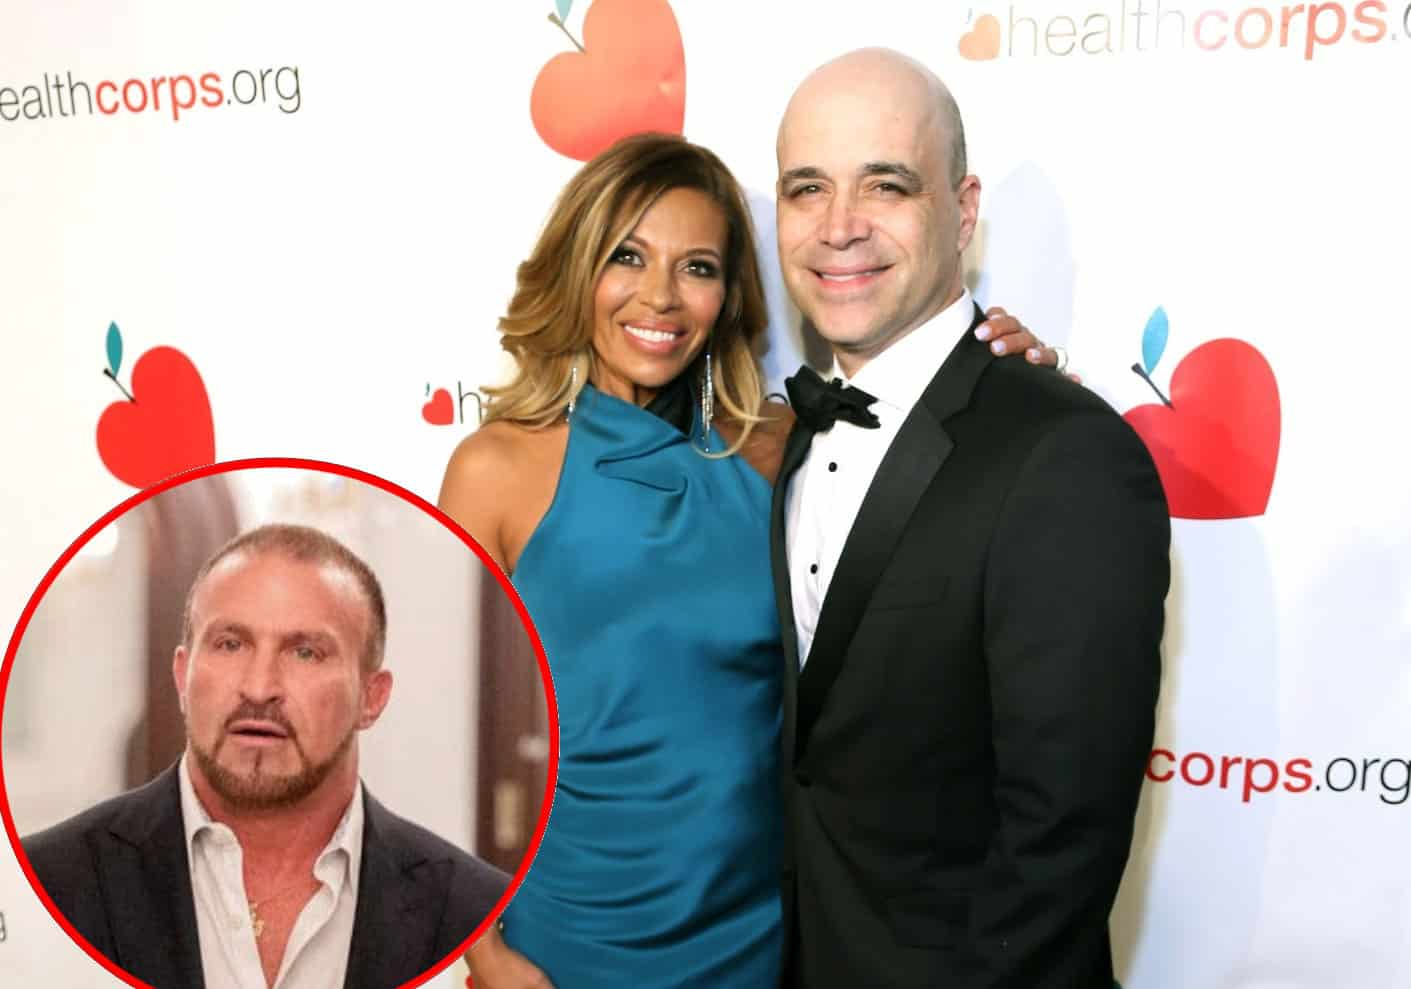 RHONJ Star Dolores Catania Shares Relationship Status with David Principe After Kissing Ex Frank Catania and Revealing She's Getting Her Own Place in NYC